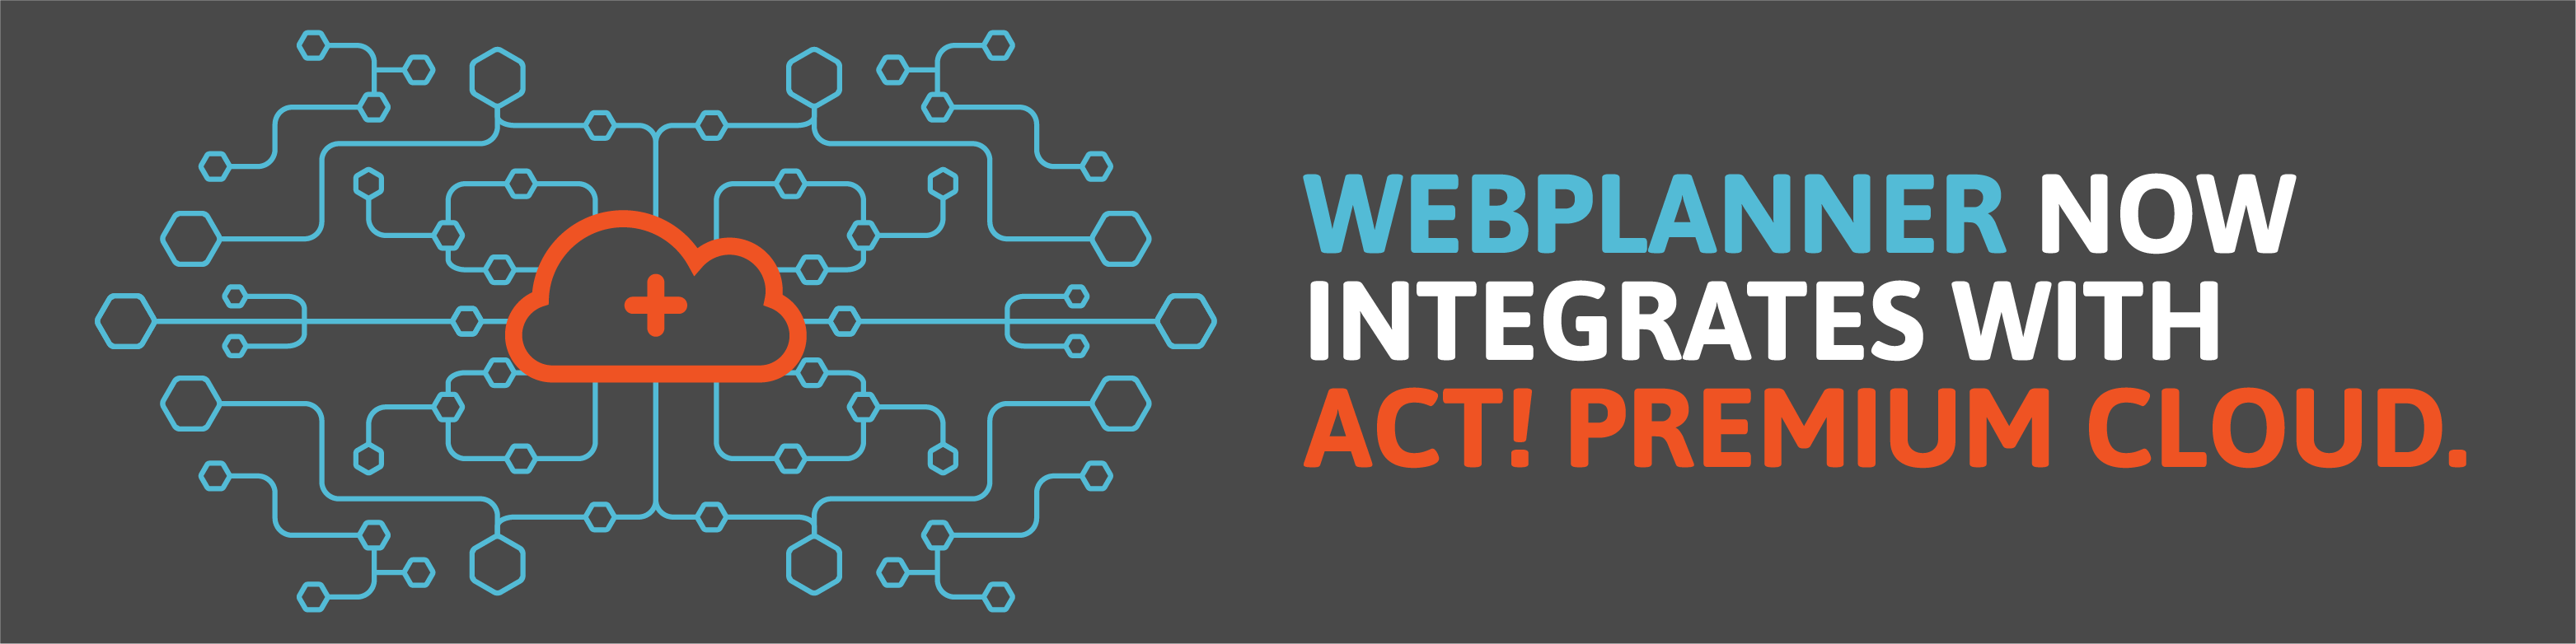 webplanner-integrates-with-act-web_en.png